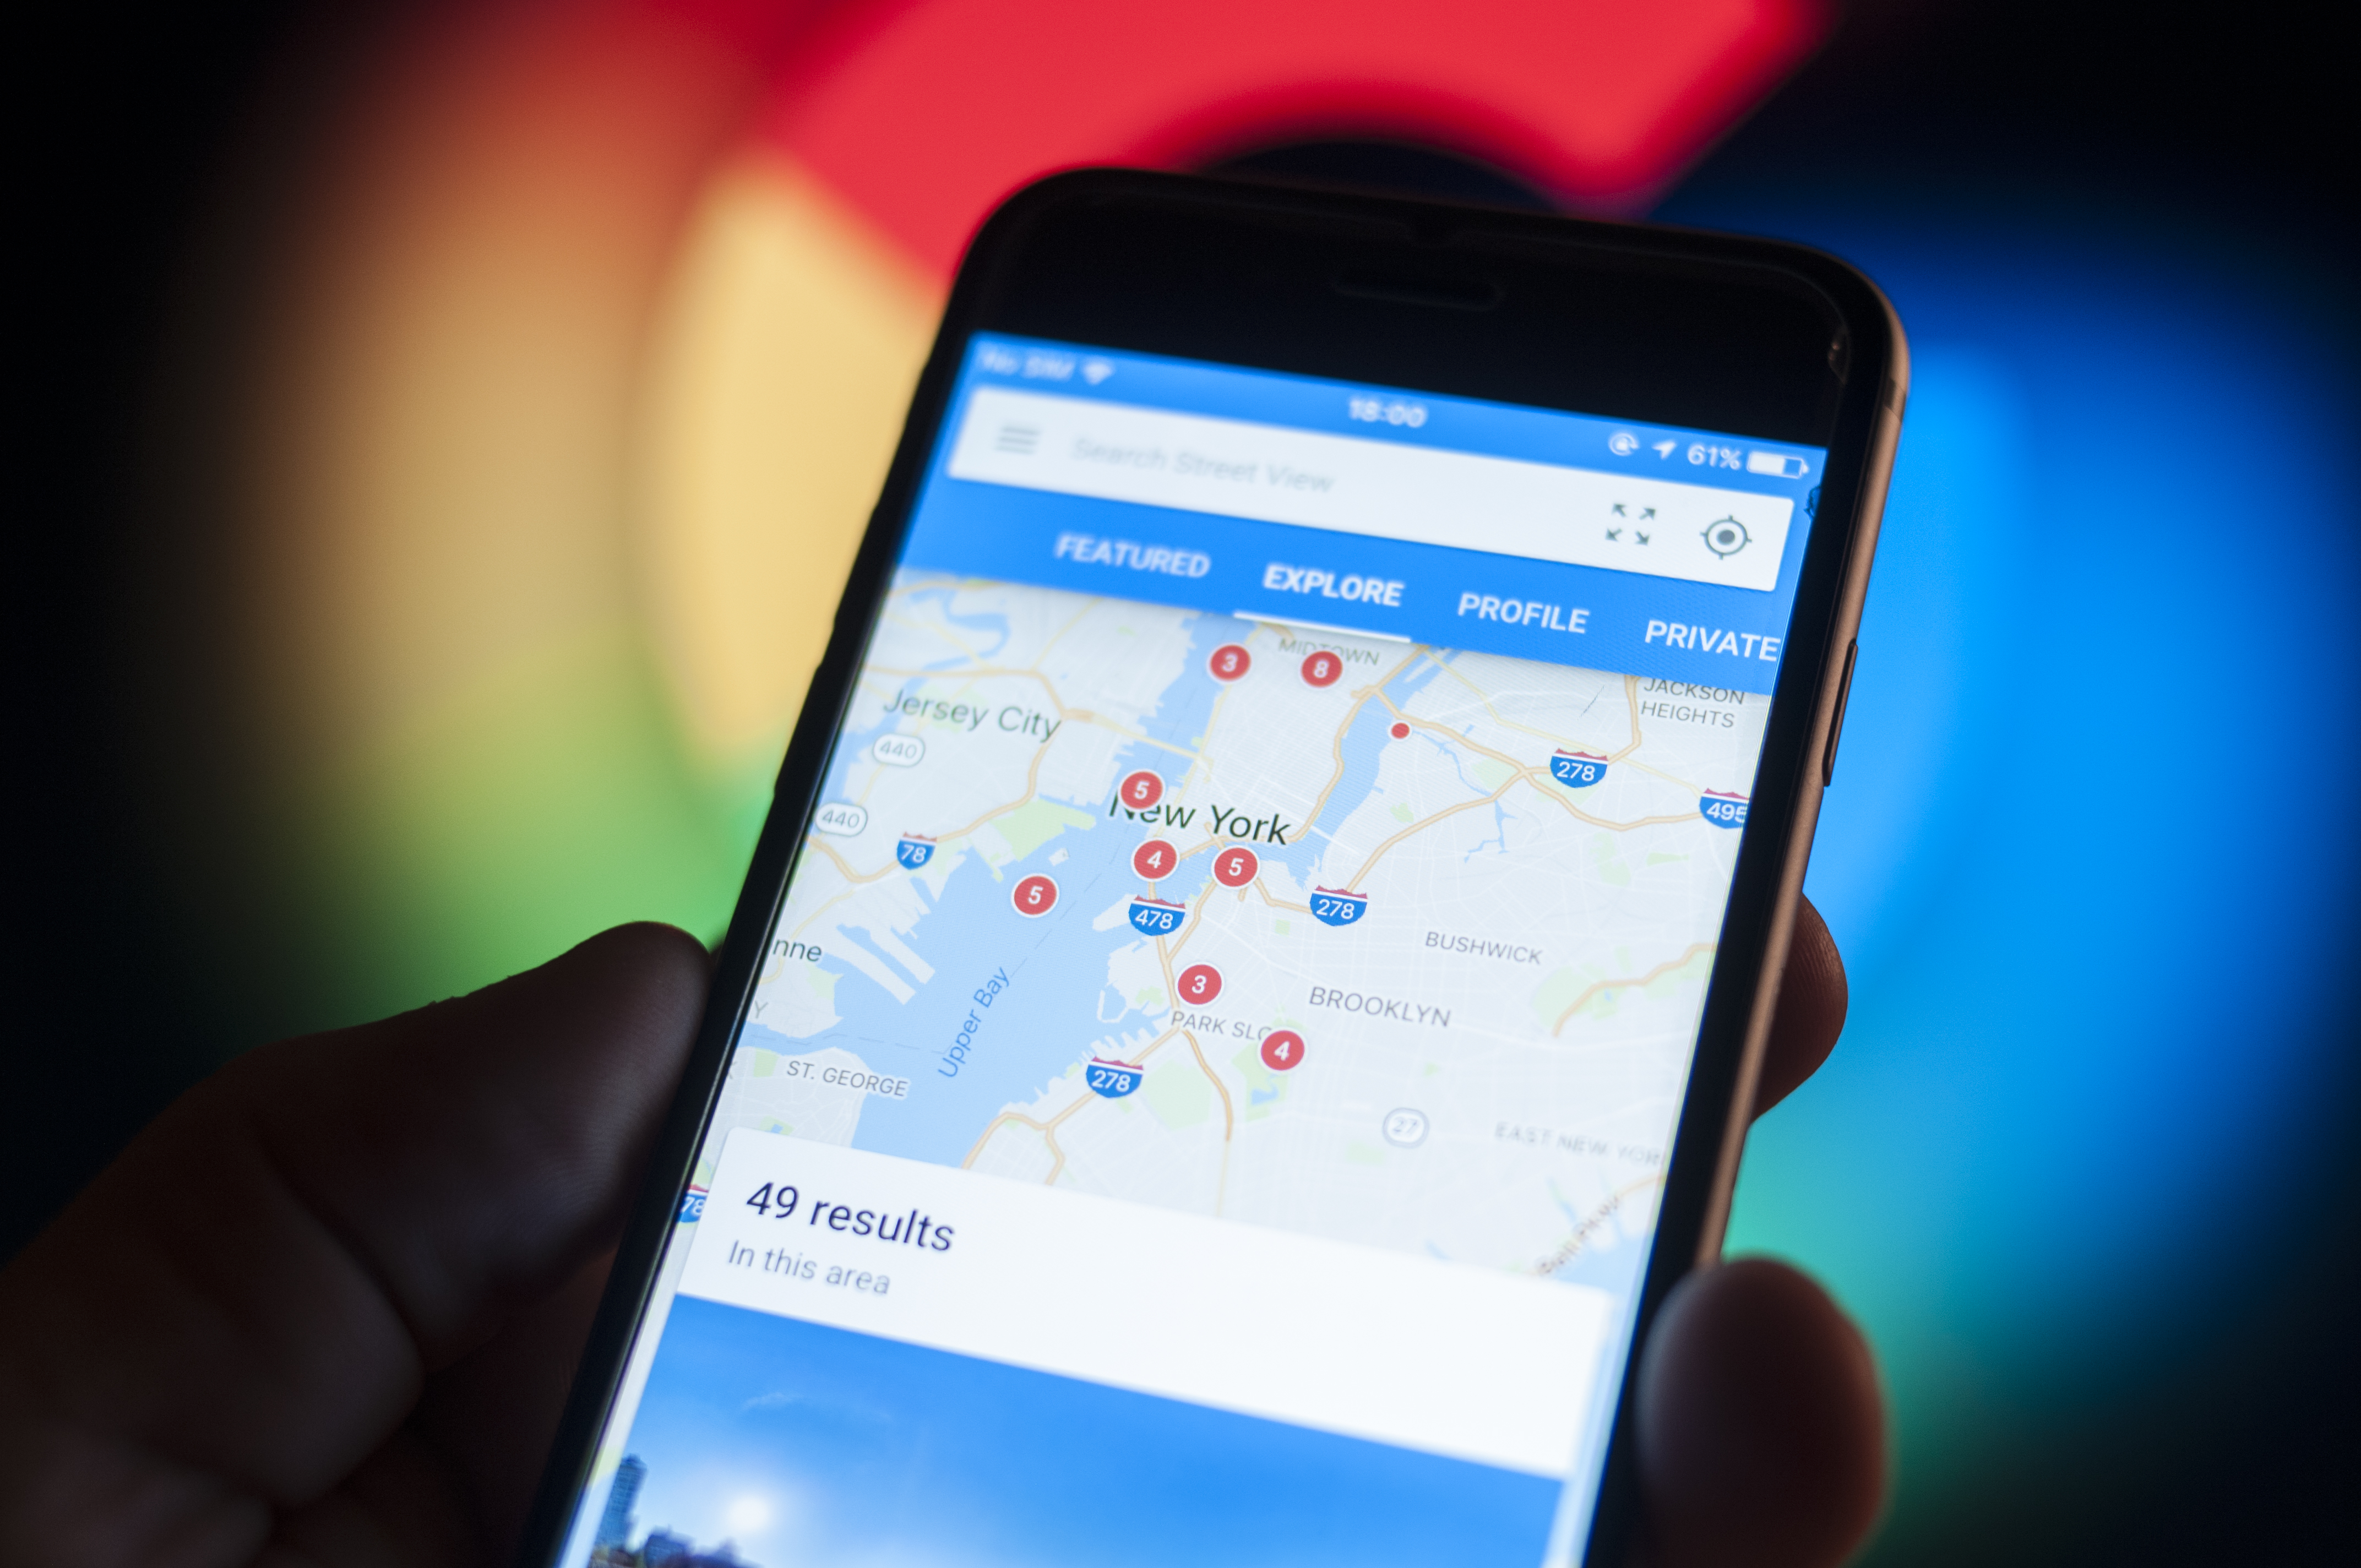 Google maps appears on iPhone screen